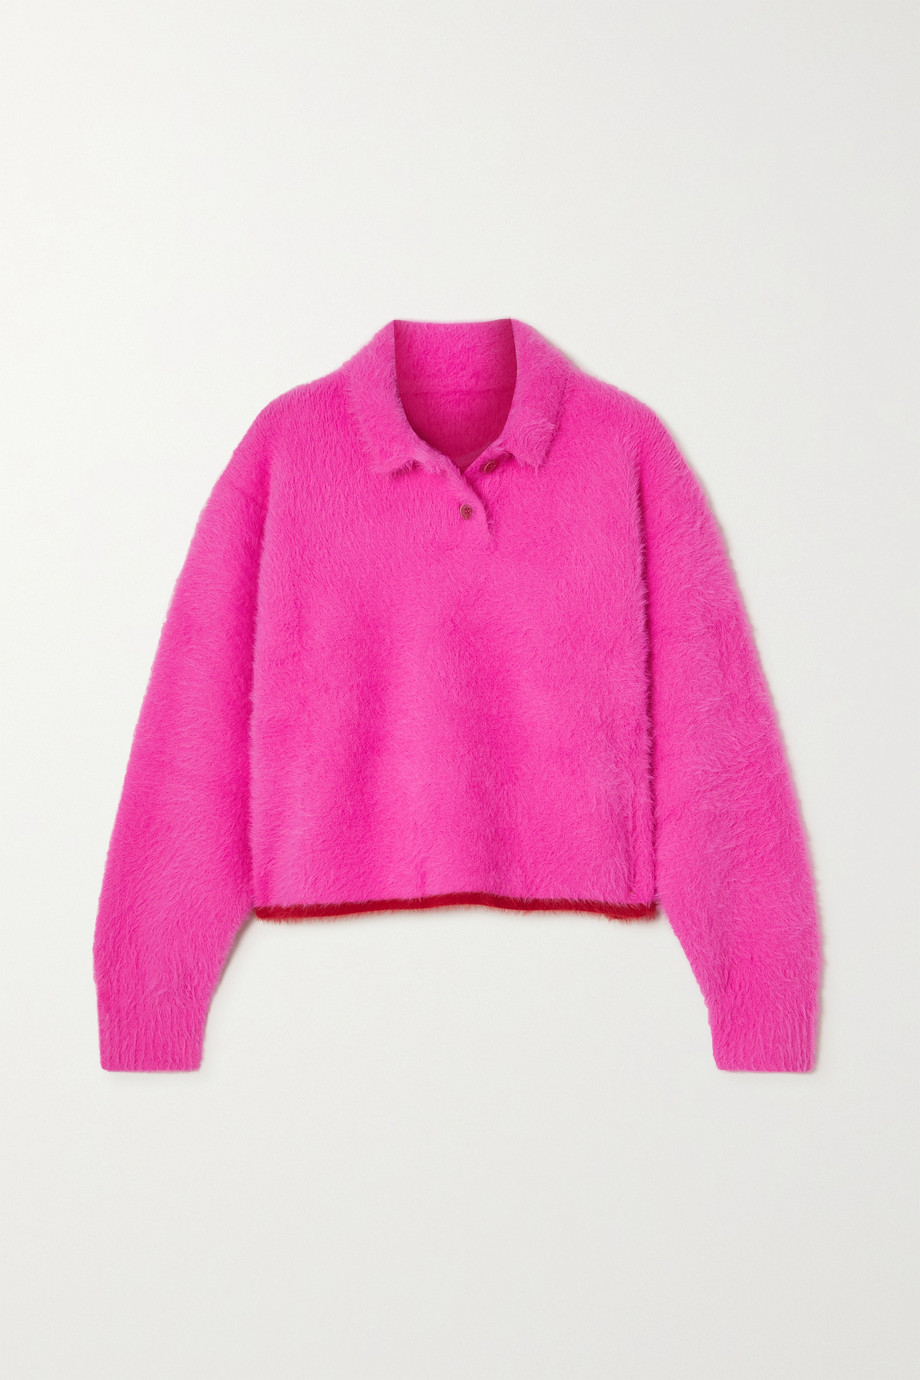 Jacquemus Neve stretch-knit sweater